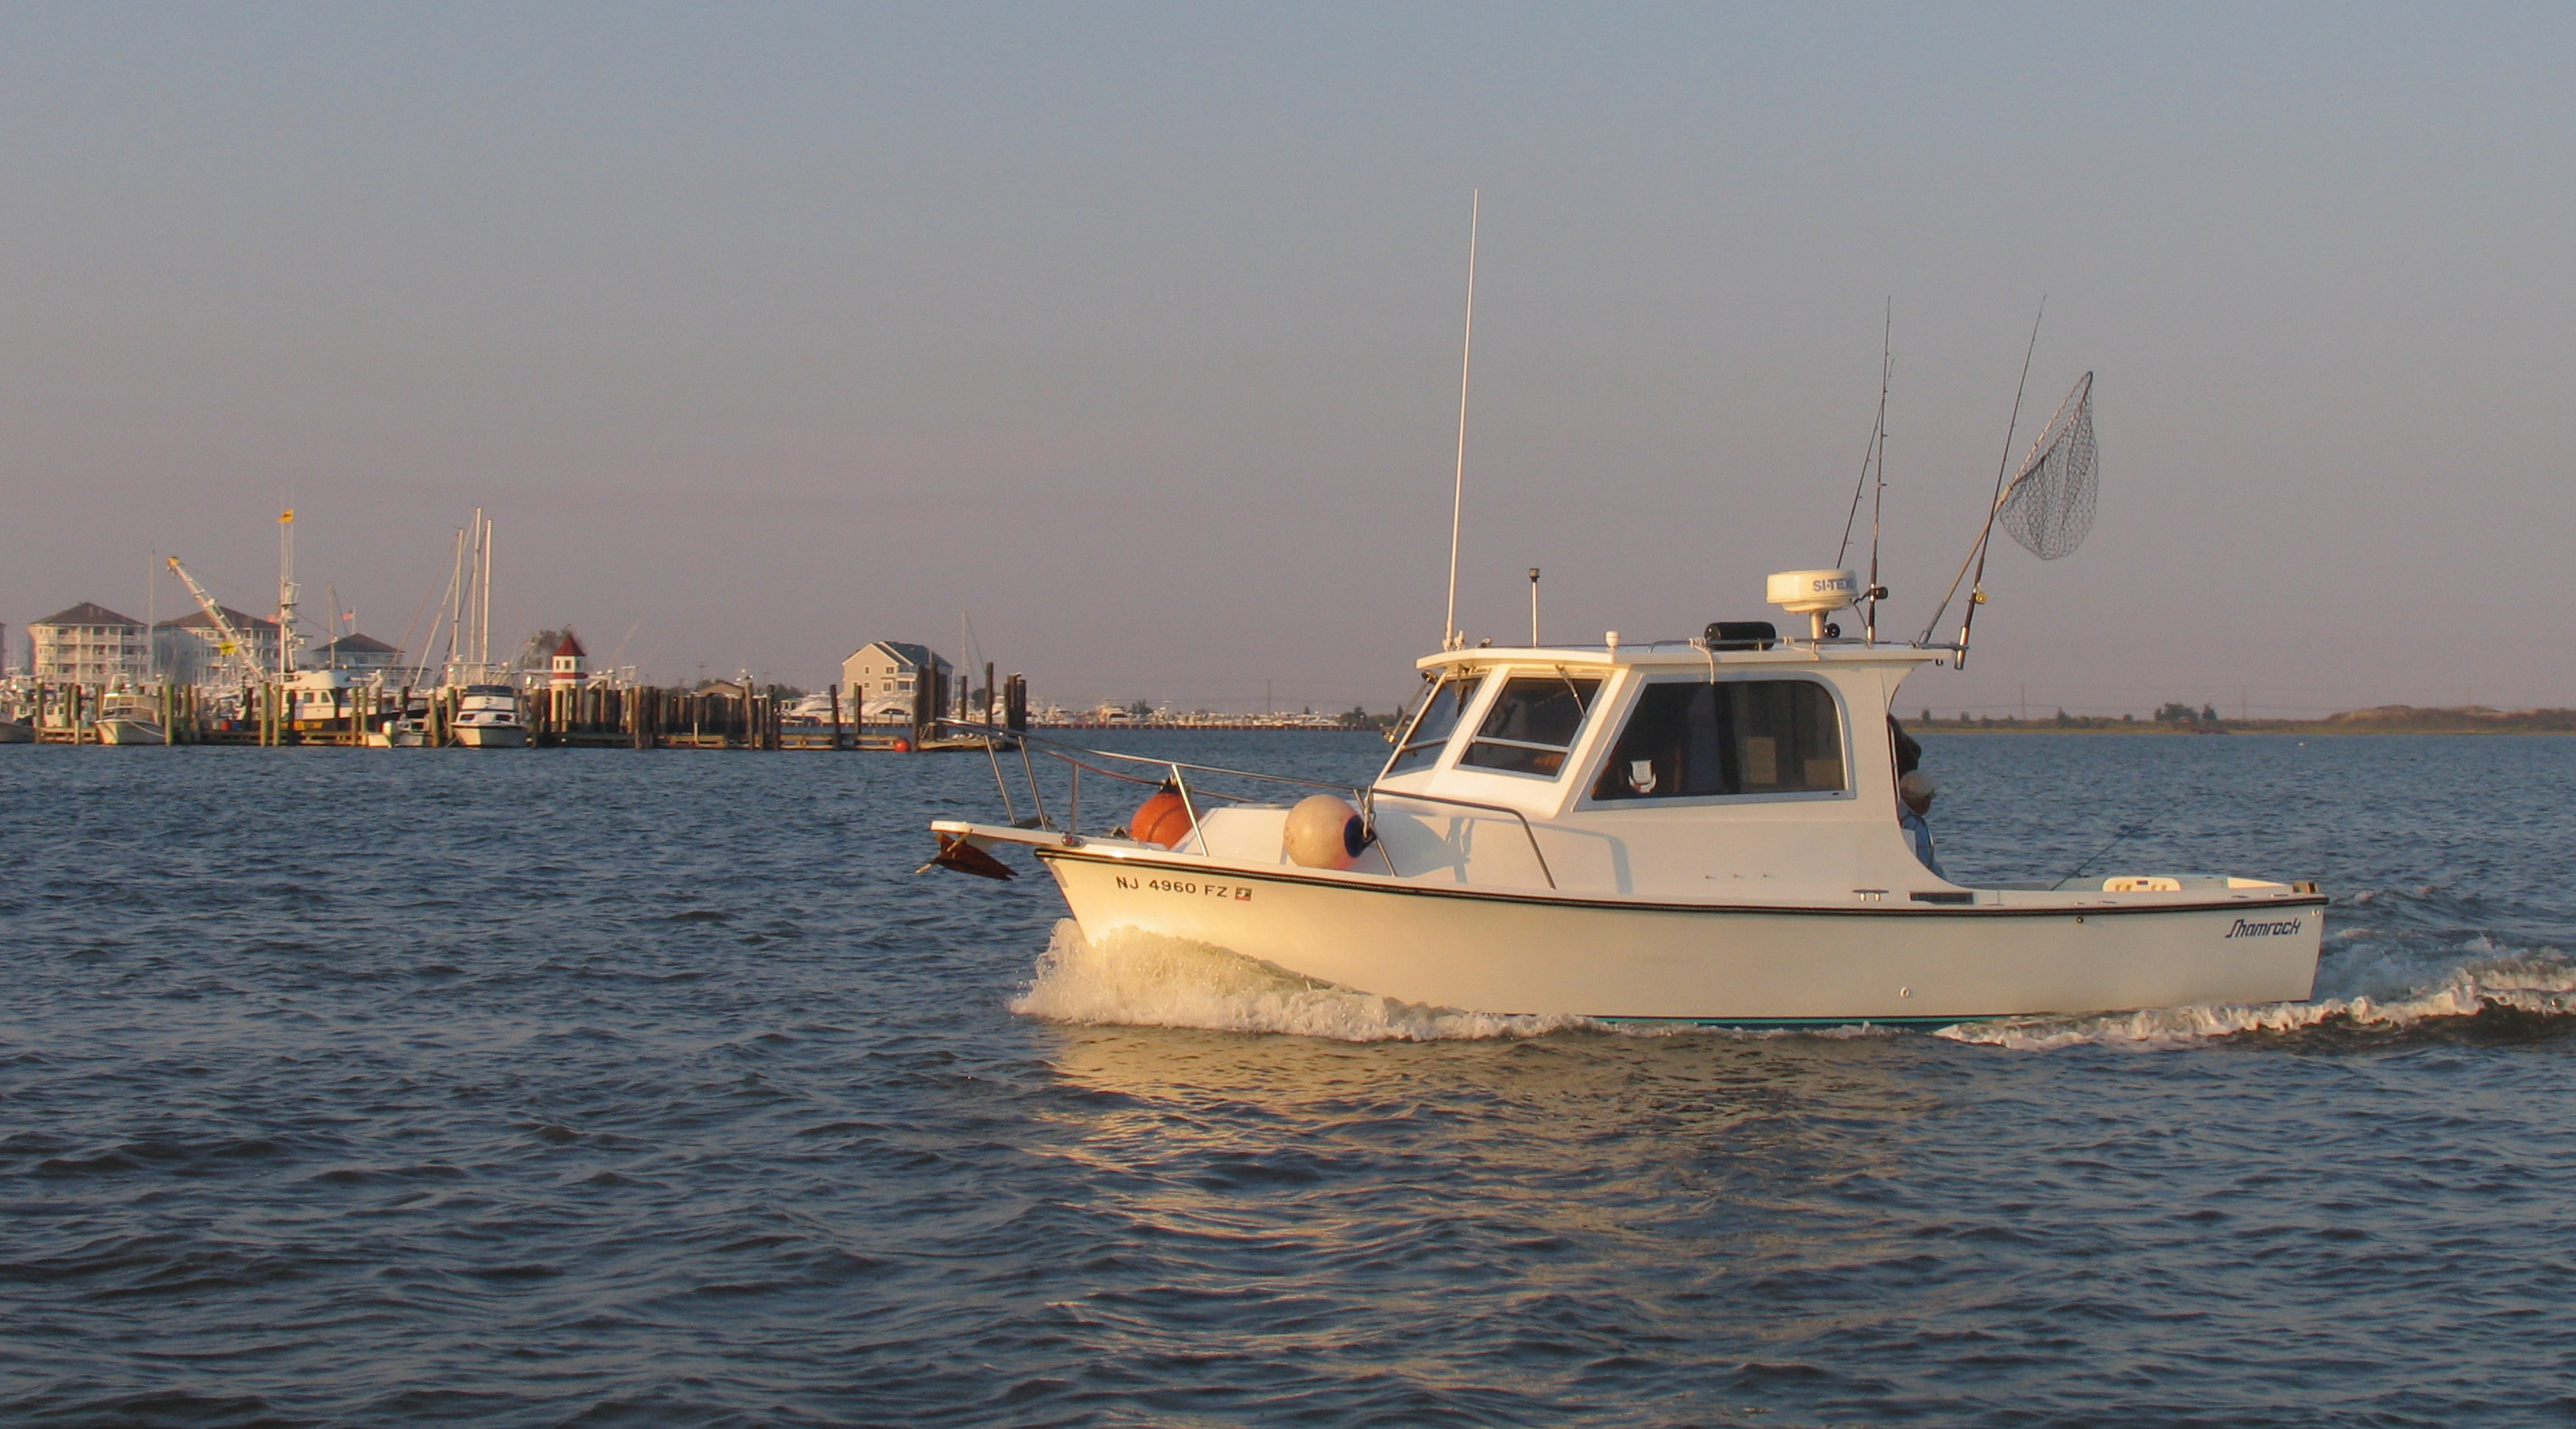 Deep sea fishing north new jersey for Wildwood nj fishing charters